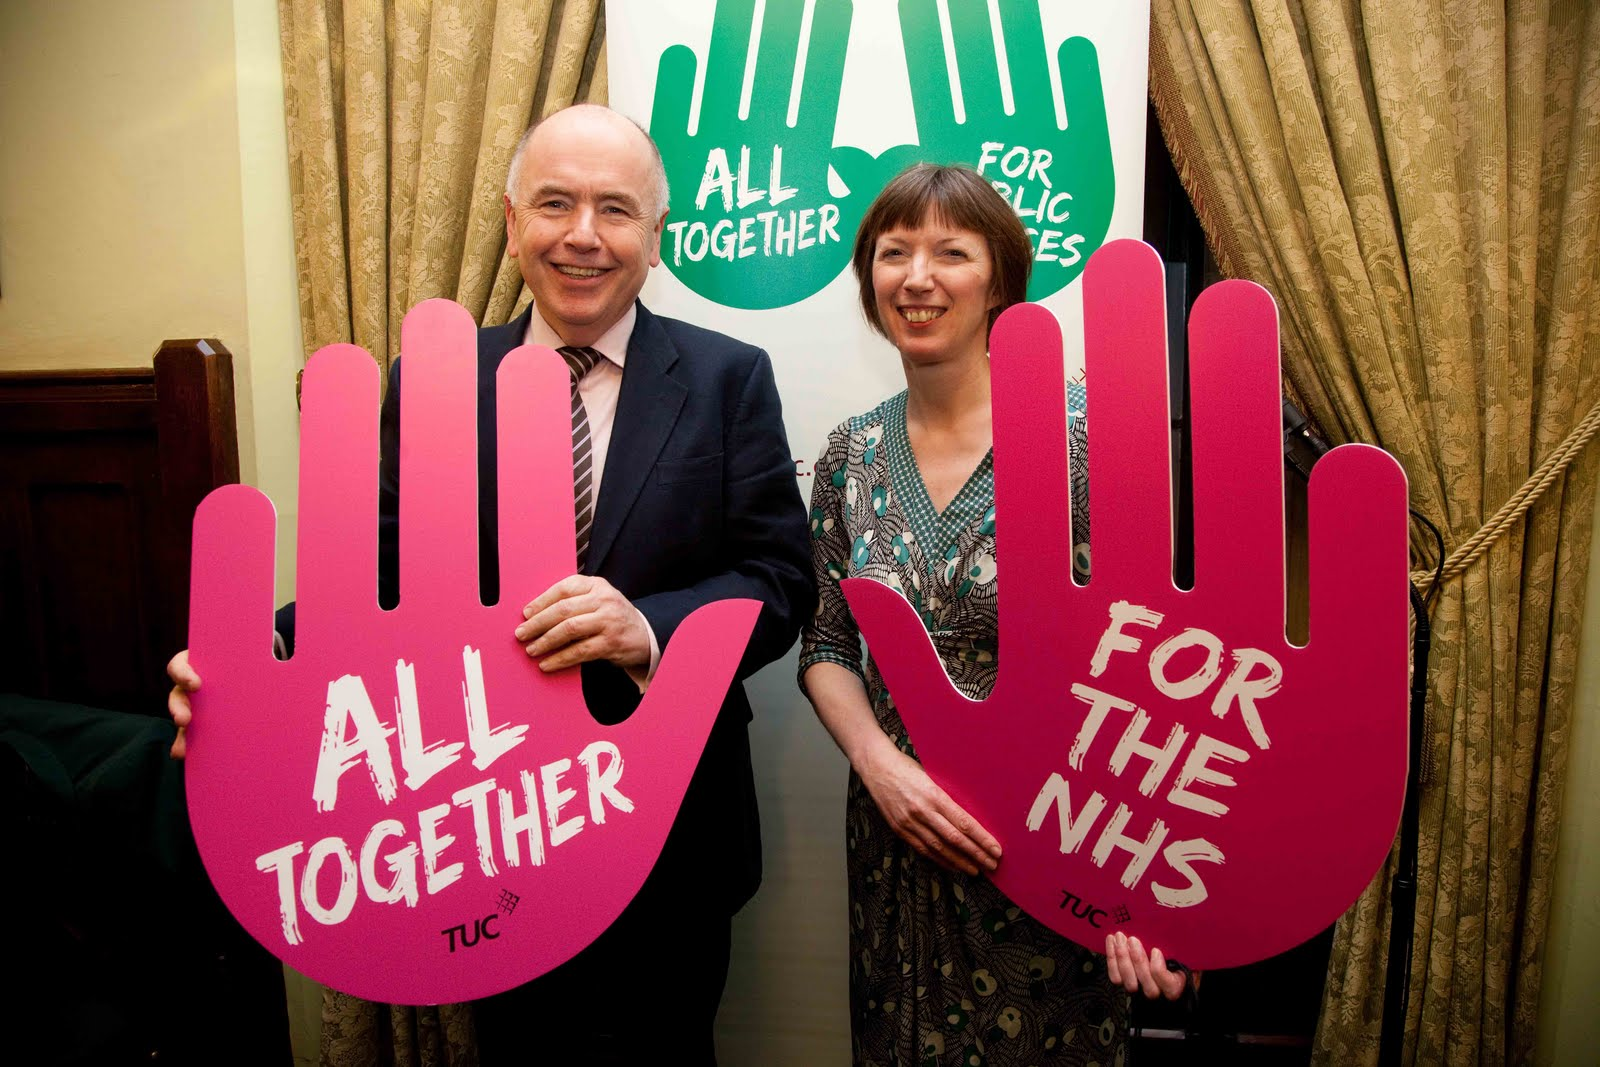 2011-05-27_All_together_for_the_NHS.jpg